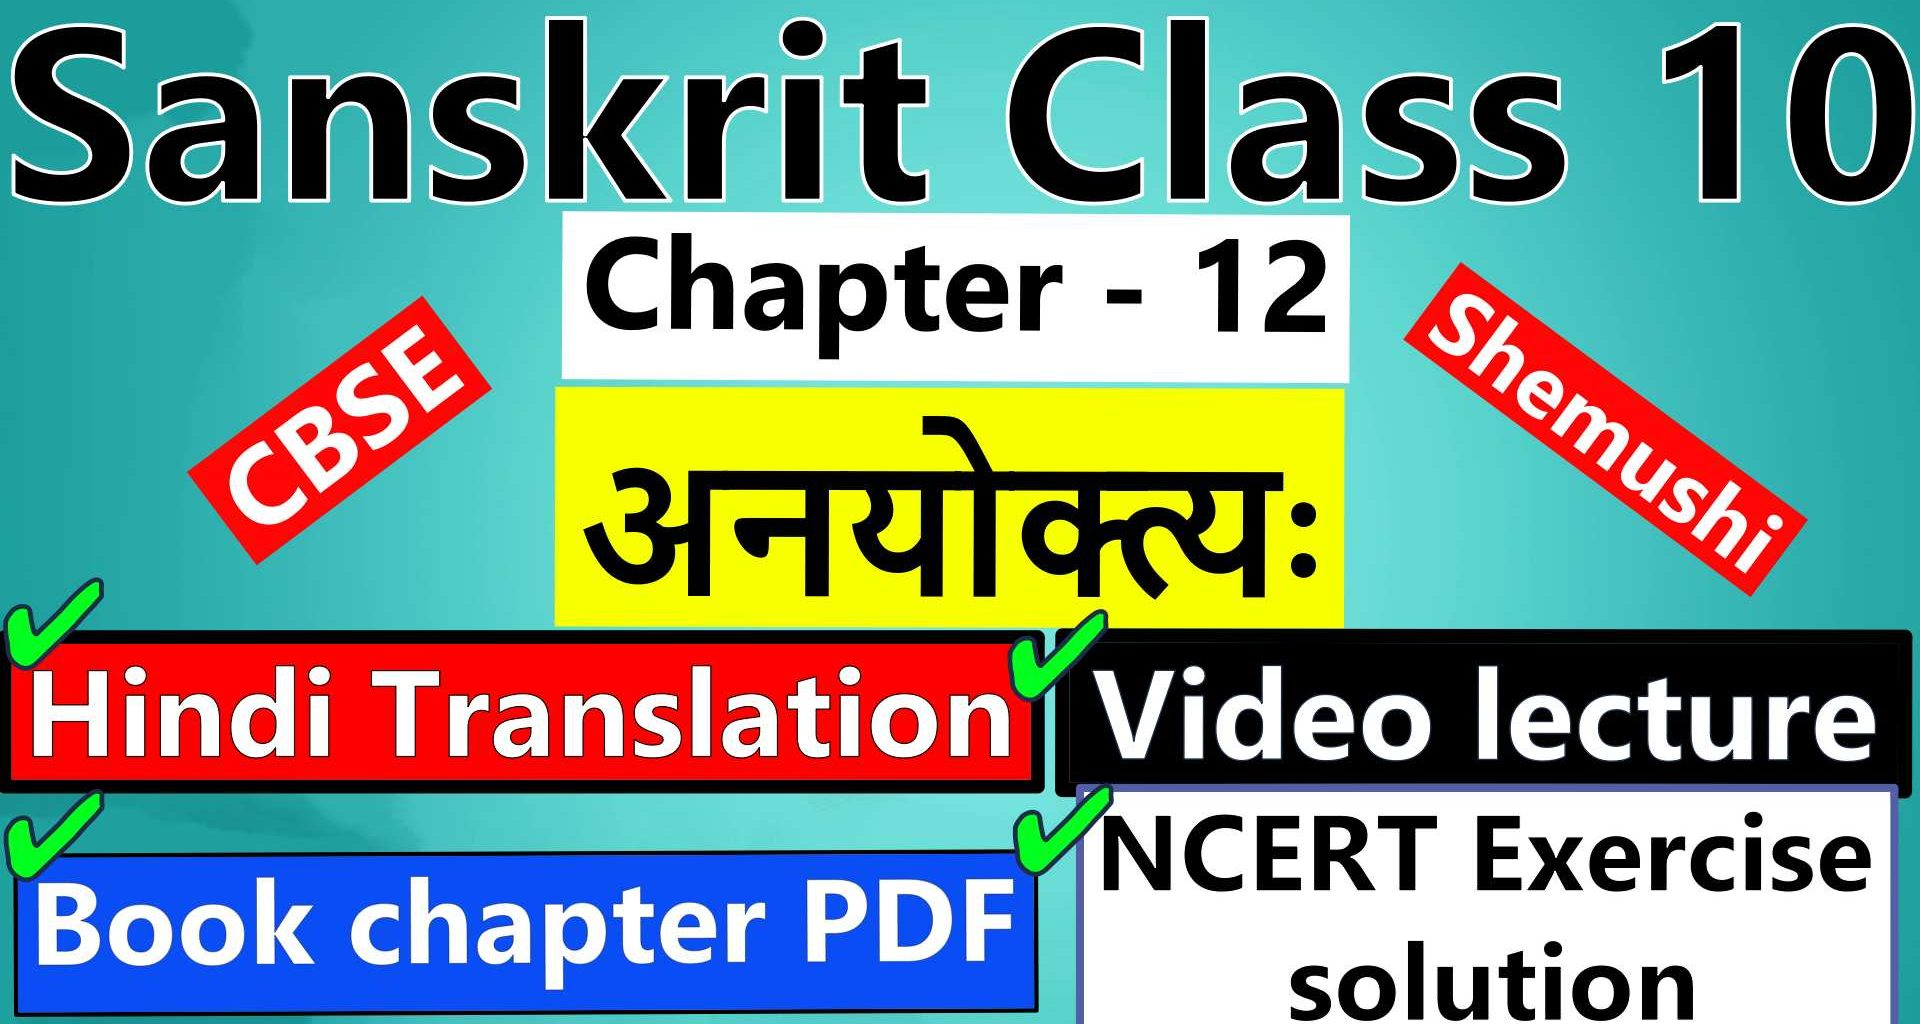 sanskrit-class-10-chapter-12-अनयोक्त्यः-Hindi-Translation-Video-lecture-NCERT-Exercise-Solution-Question-Answer-Book-chapter-PDF